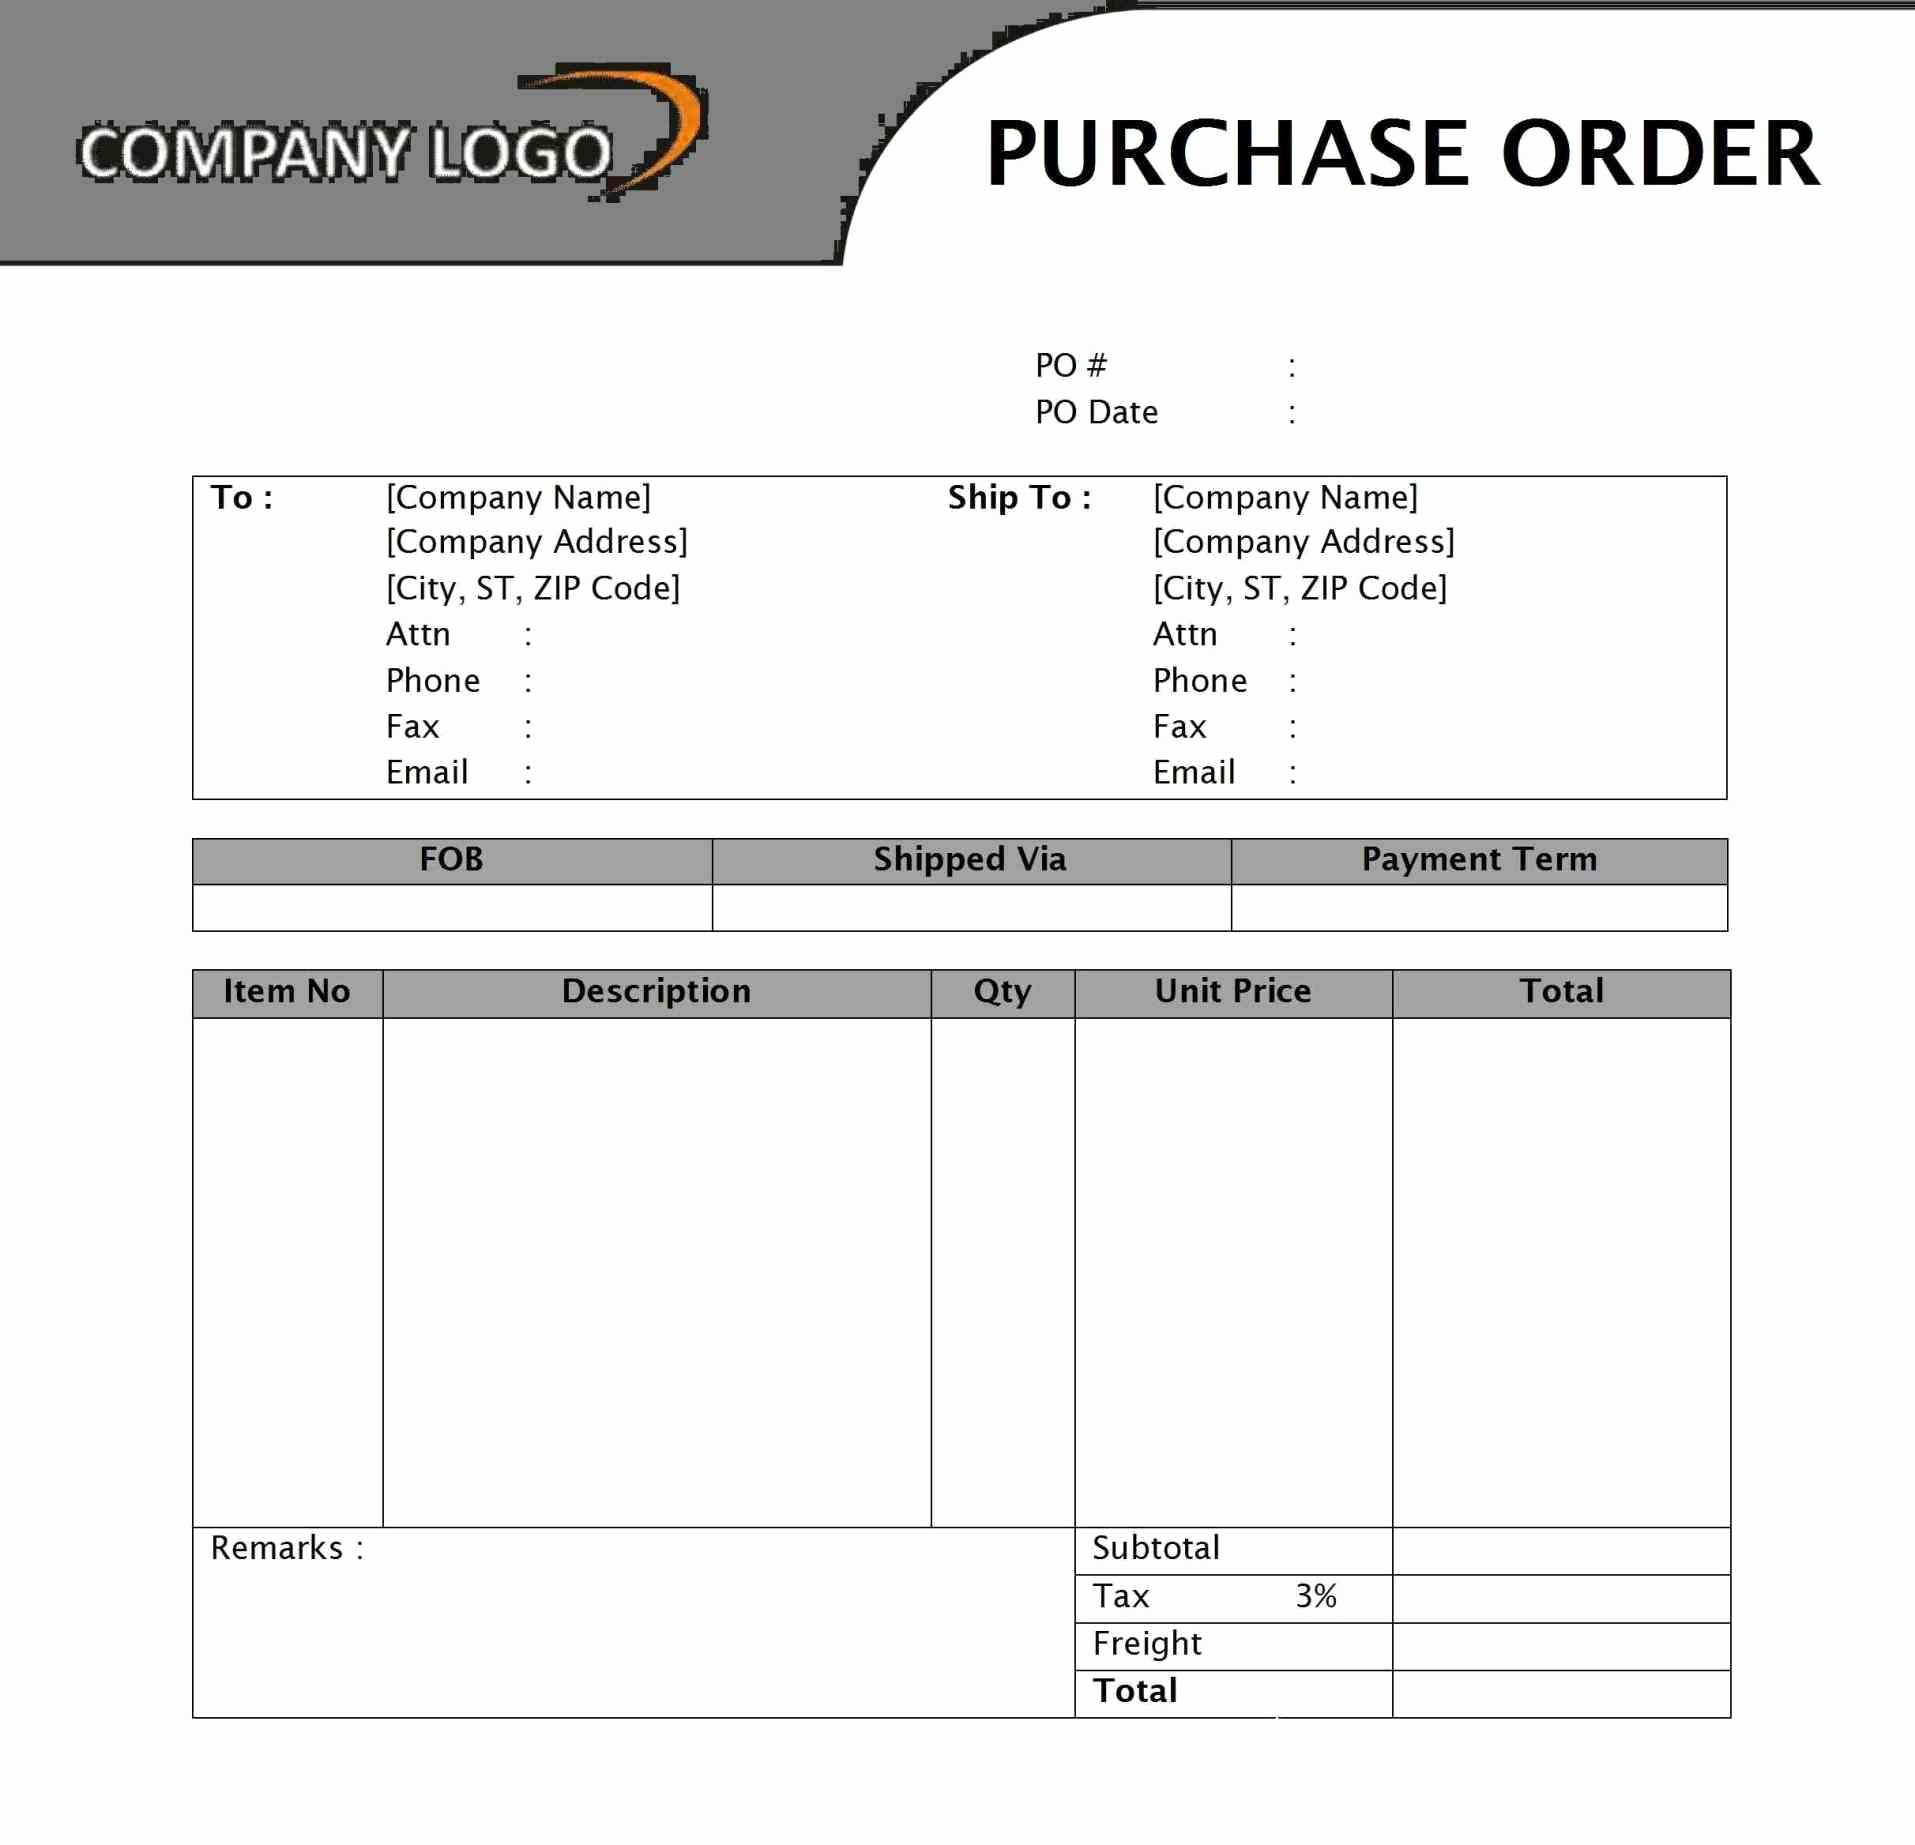 Screen Printing Invoice Template Elegant Products and Services Can Use This Printable order form as